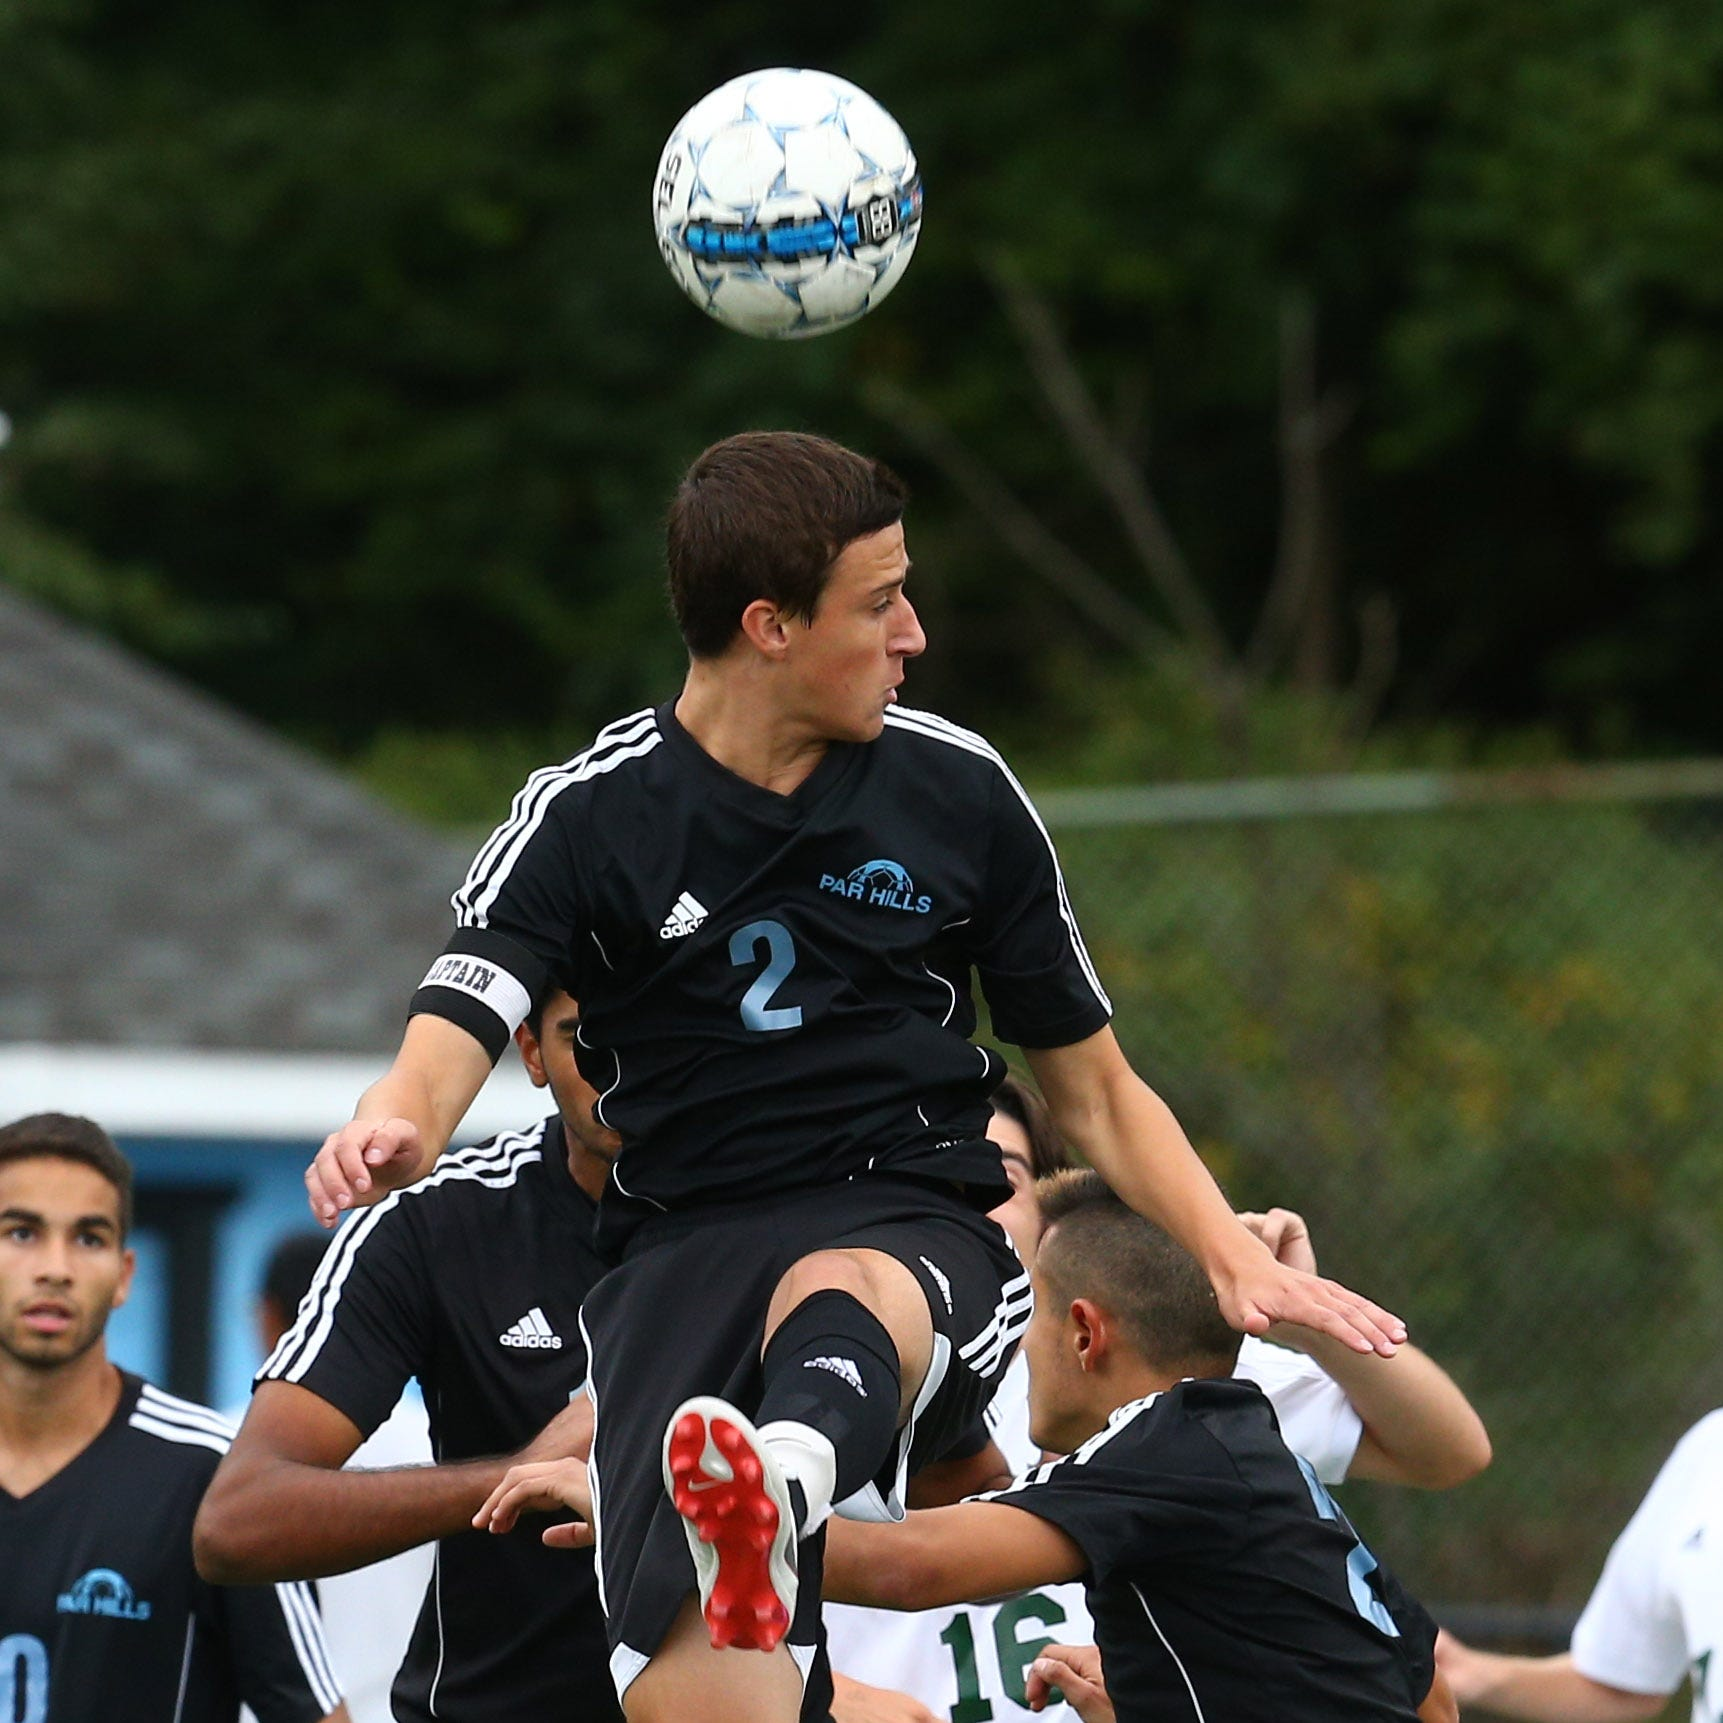 Delbarton, Parsippany Hills to decide Morris County Tournament soccer title